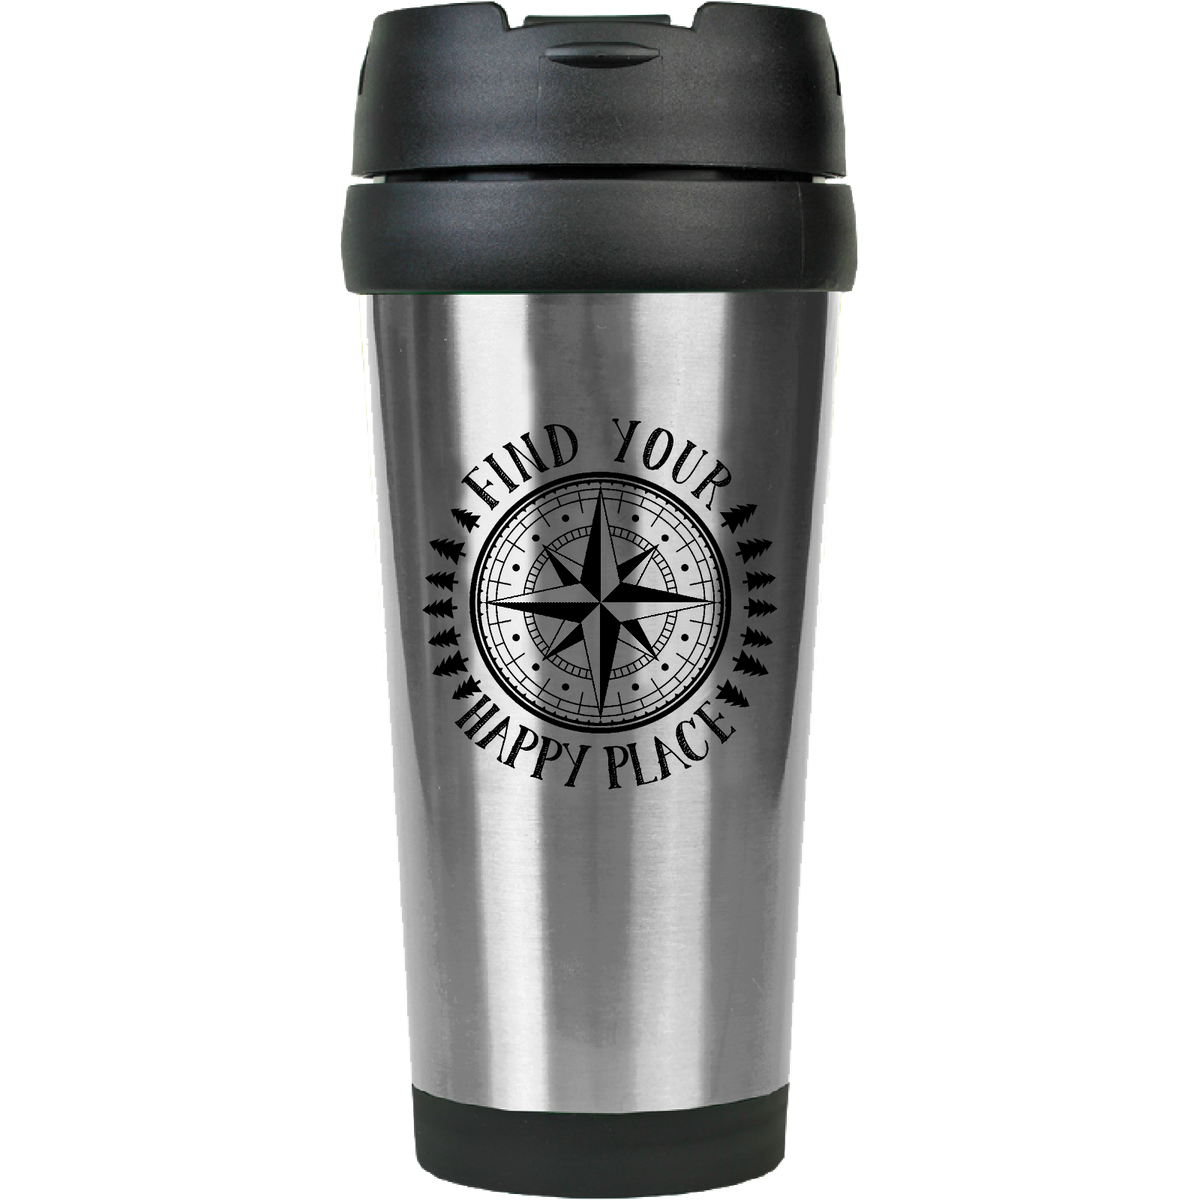 Find Your Happy Place - 16oz. Engraved Travel Mug with Flip Lid